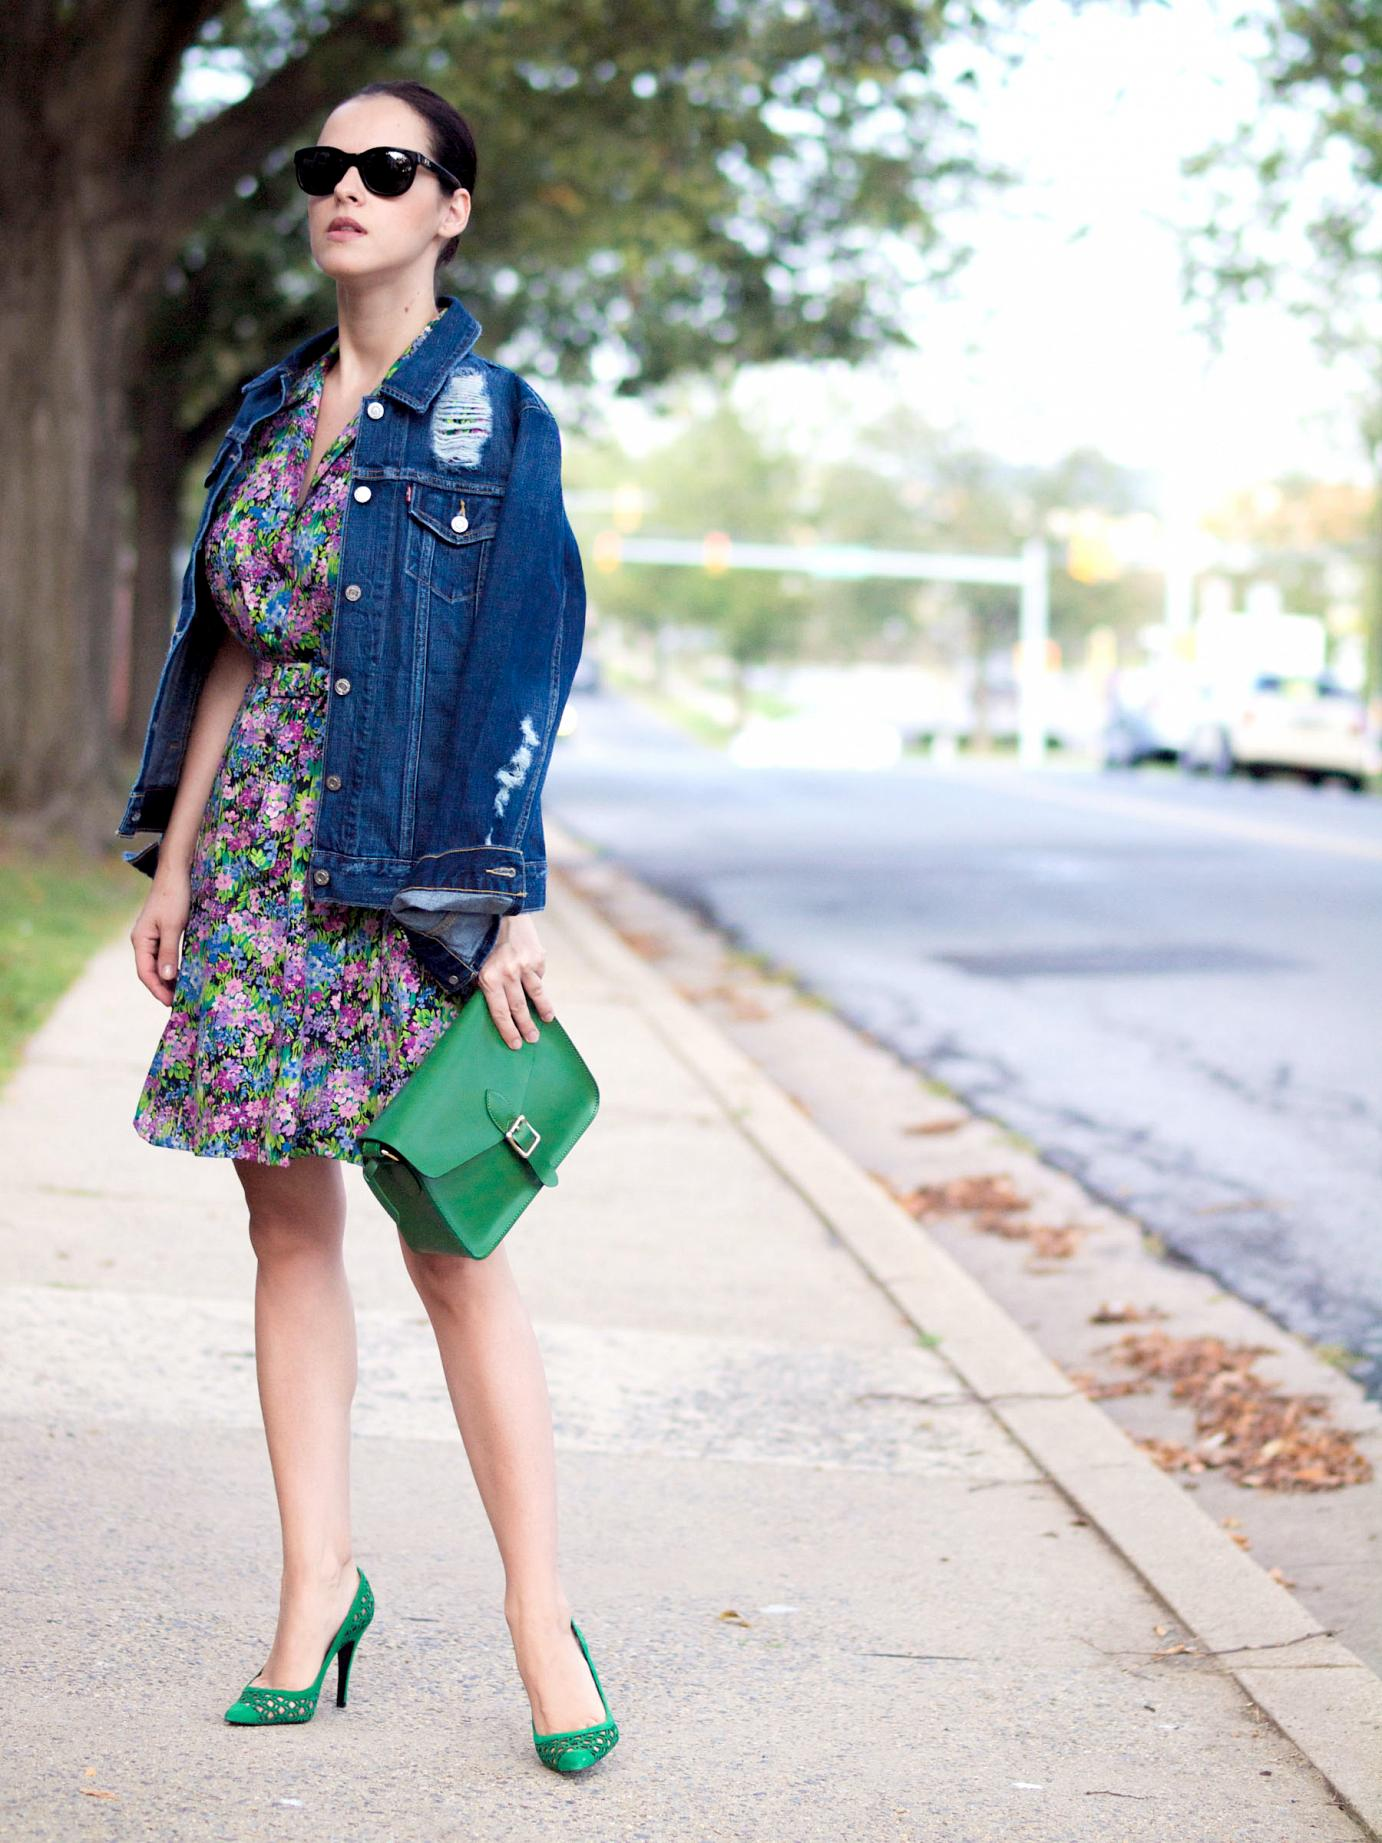 bittersweet colours, levis, denim jacket. vintage dress, floral dress, pierre hardy shoes, green shoes, street style, fall trends, denim and floral prints, colors